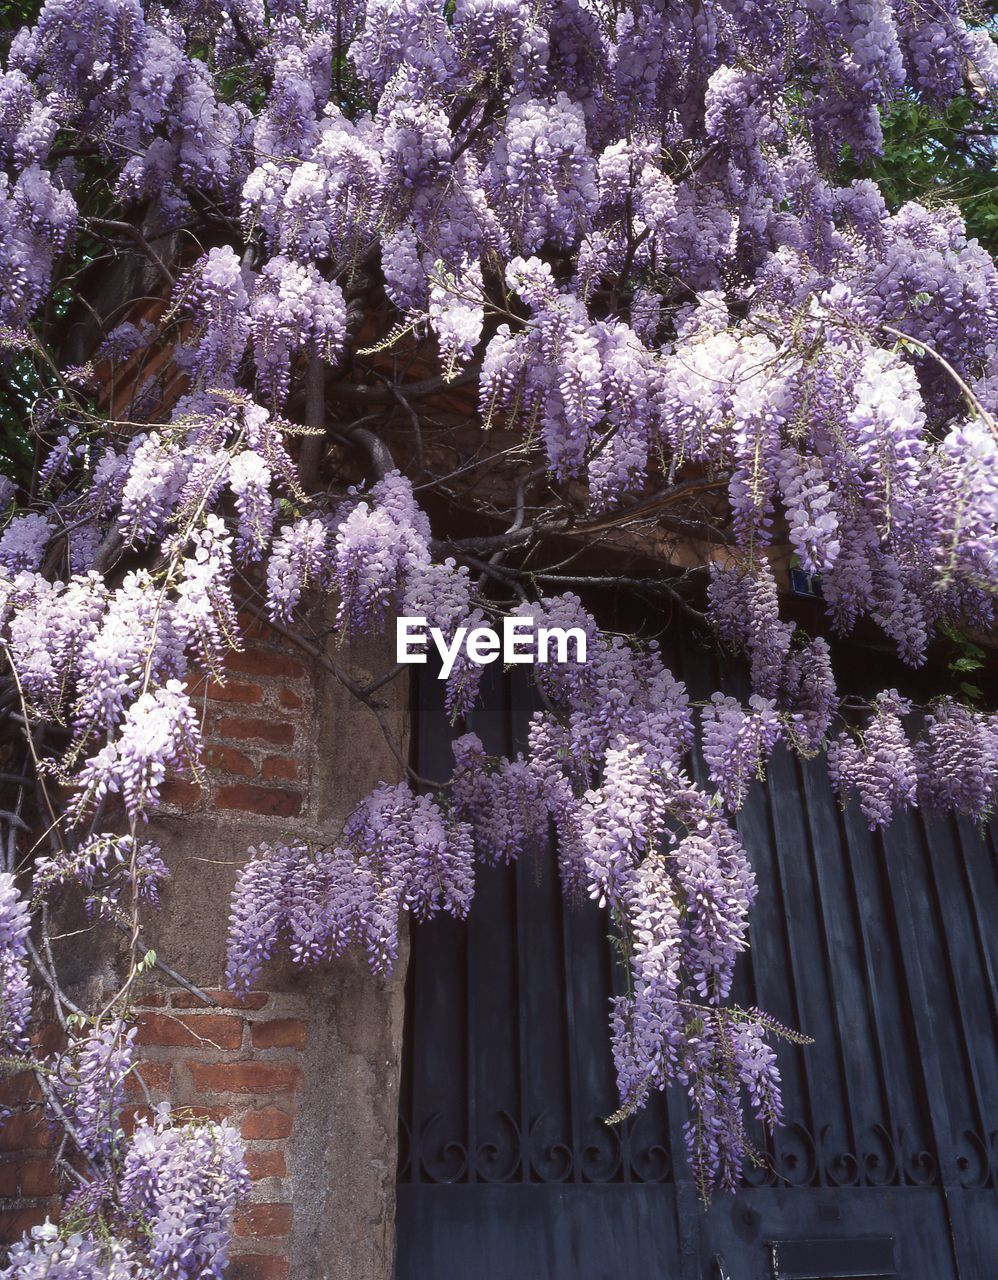 flower, tree, wisteria, growth, branch, blossom, springtime, beauty in nature, nature, fragility, day, purple, outdoors, no people, low angle view, freshness, plant, pink color, blooming, architecture, close-up